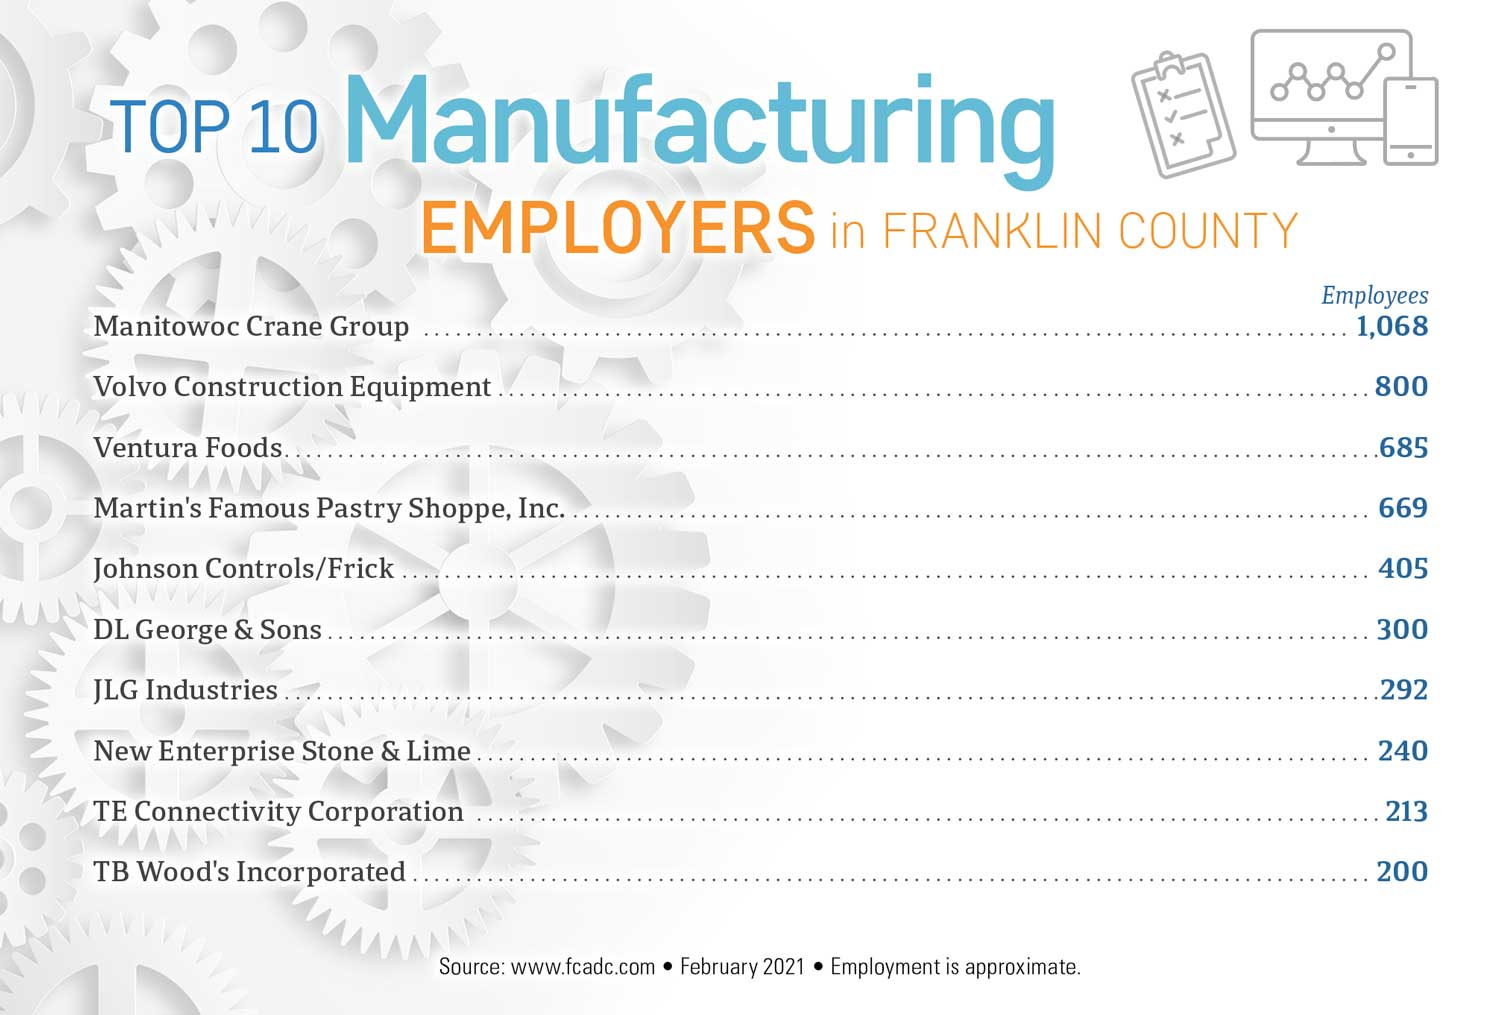 Top 10 Manufacturing Employers in Franklin County